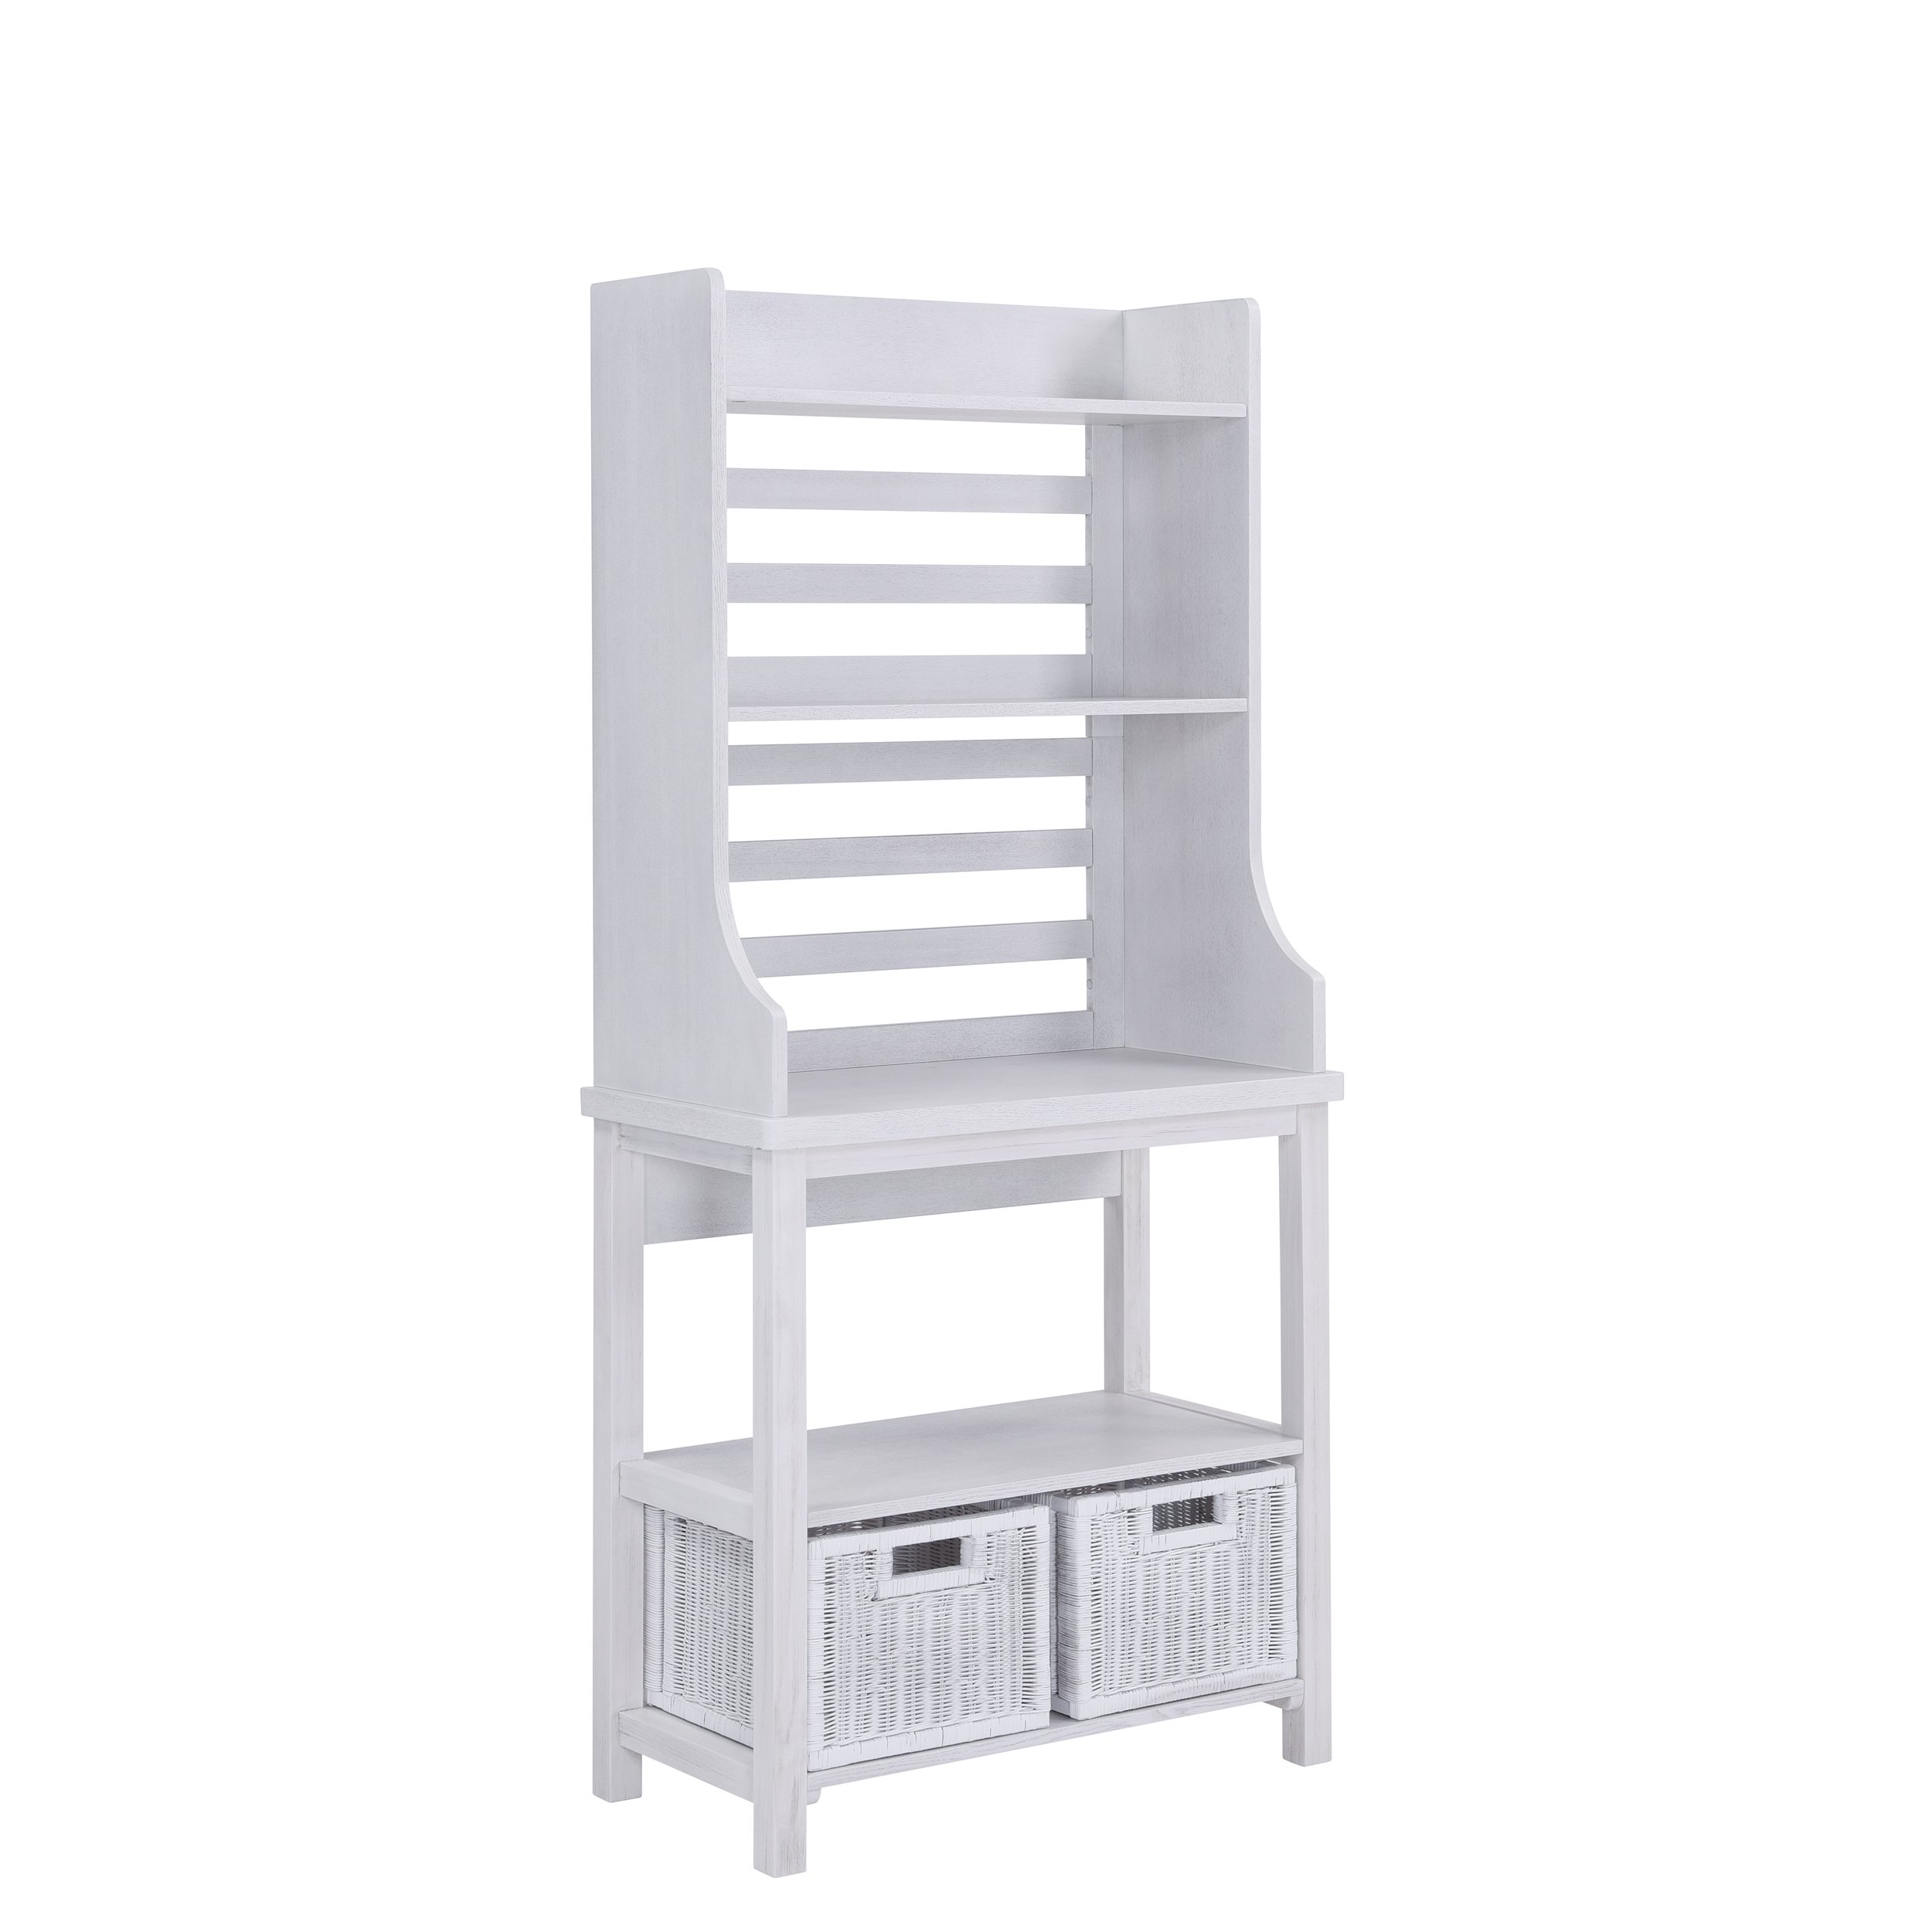 Furniture HotSpot – Bakers Rack – White Stain - 30'' W x 15'' D x 64.5'' H